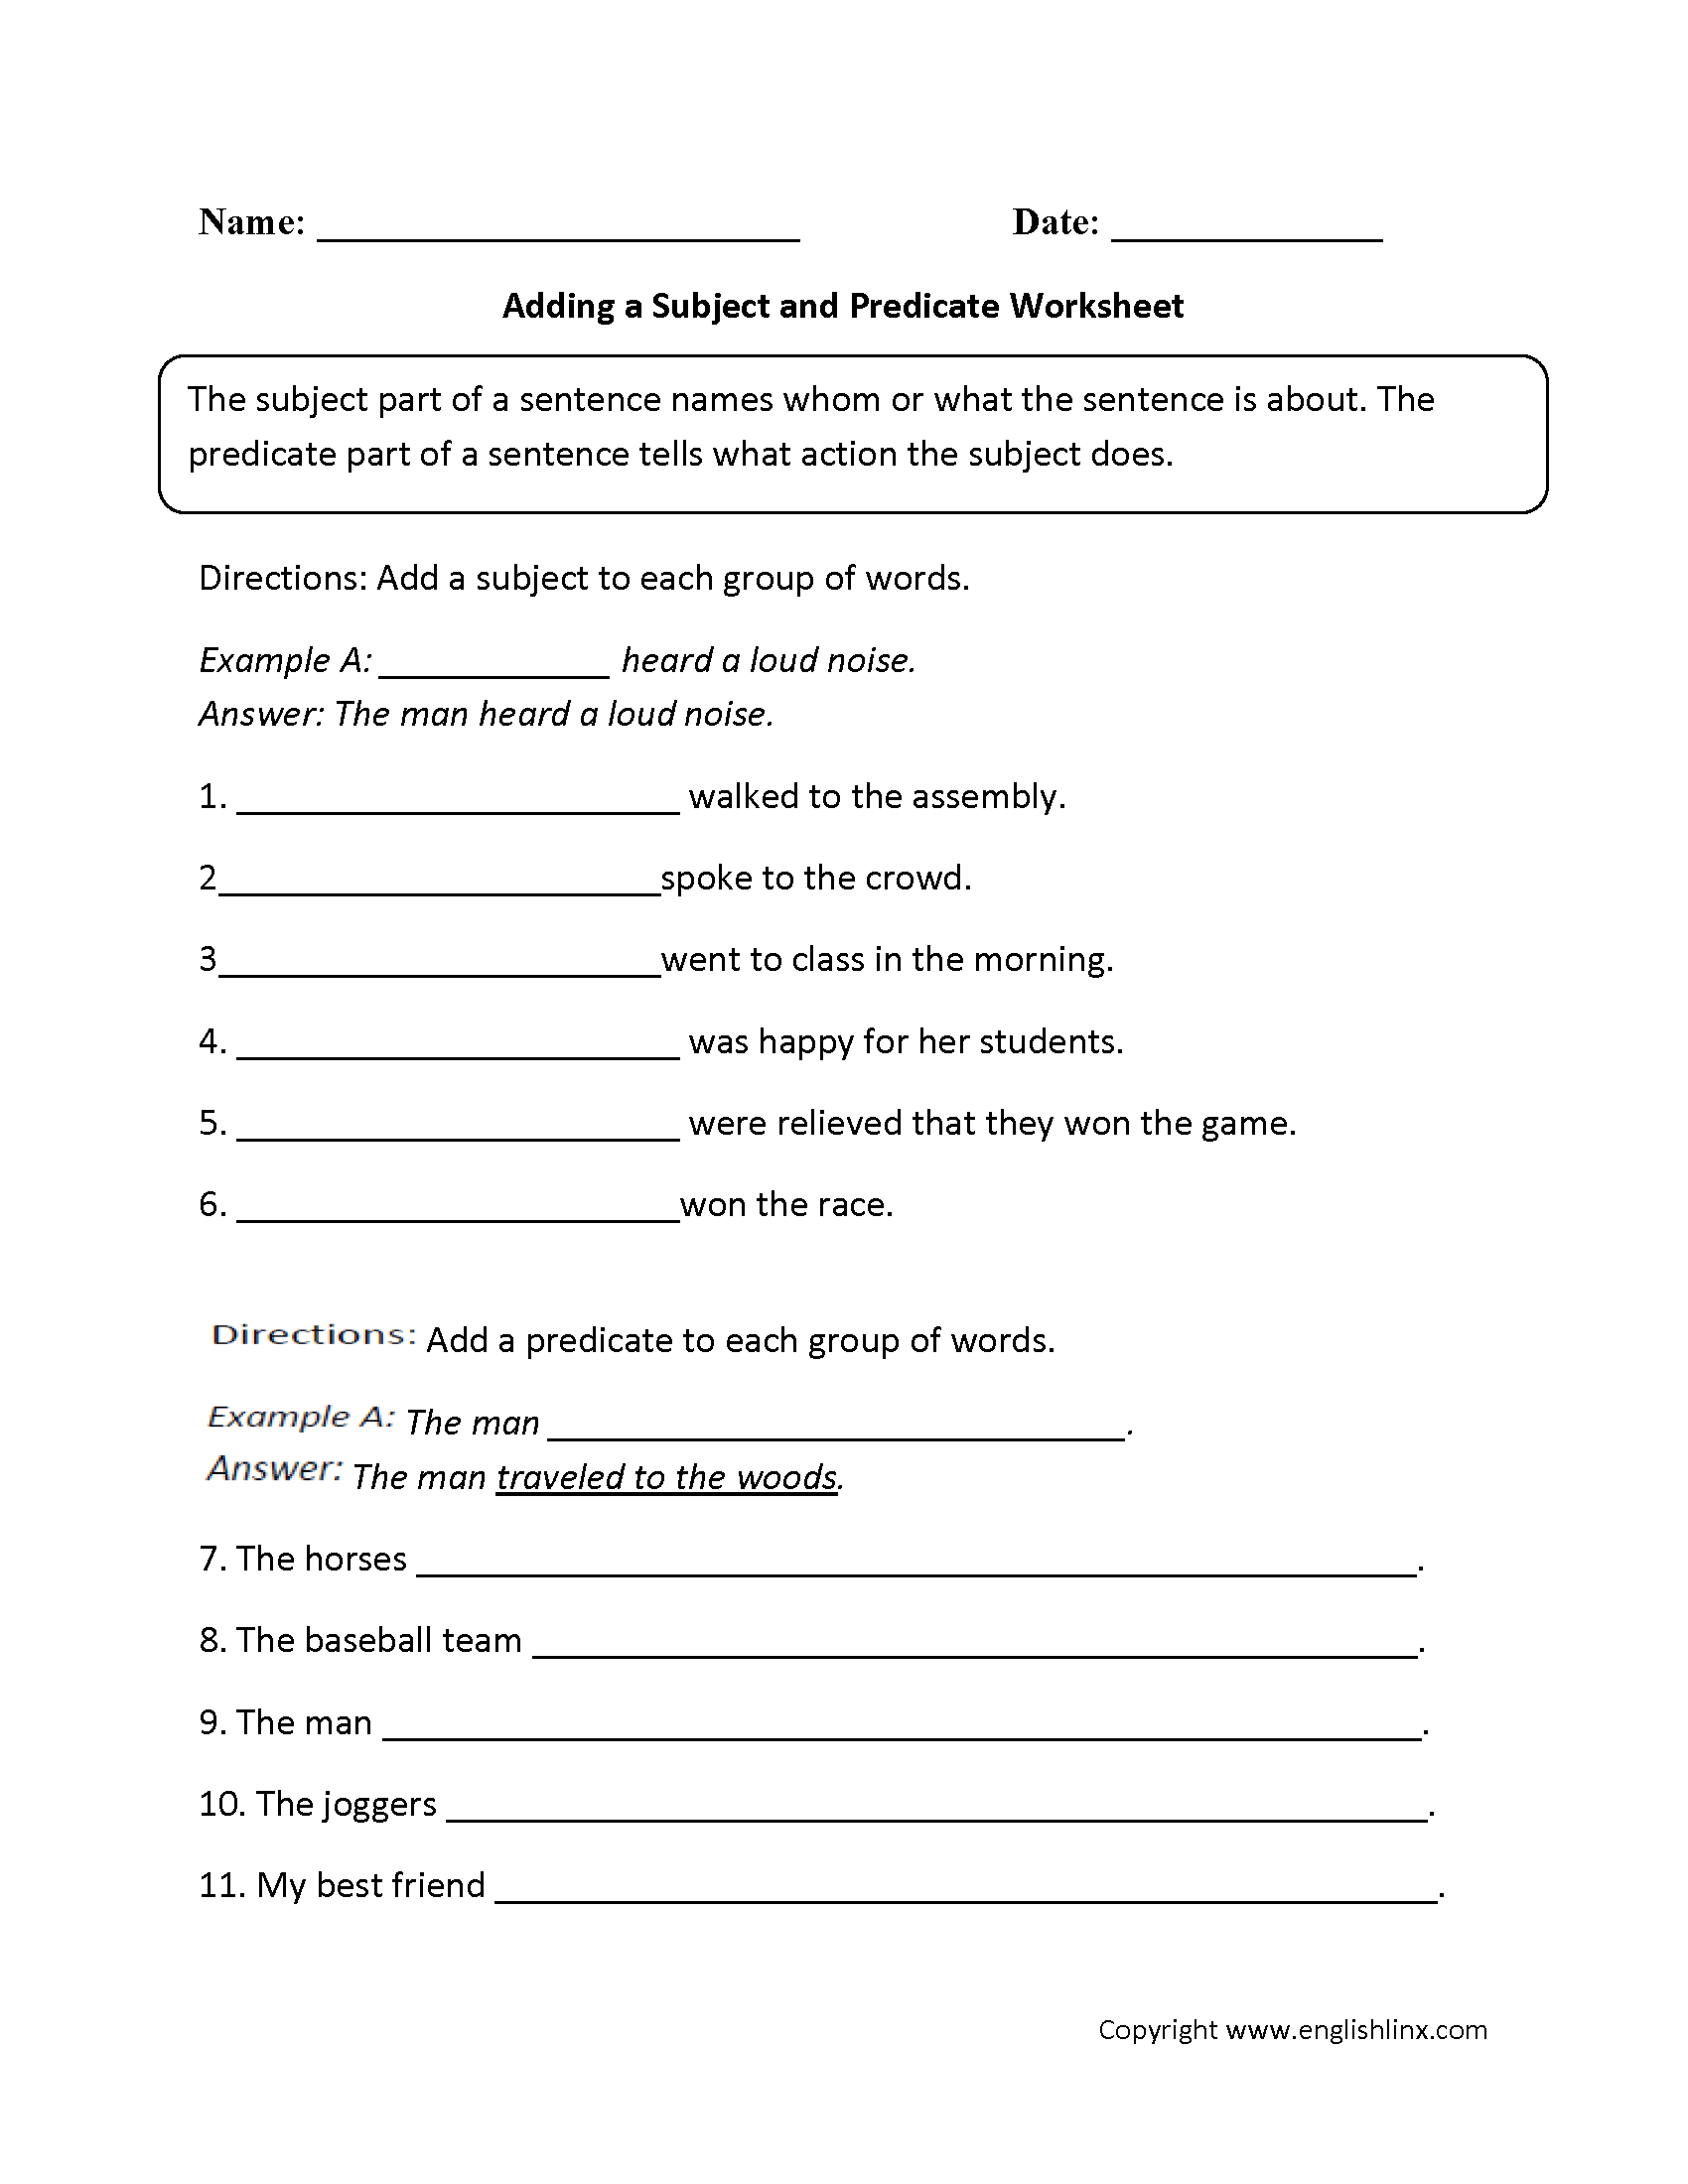 Printables Subject And Predicate Worksheets subject and predicate worksheets adding a worksheet